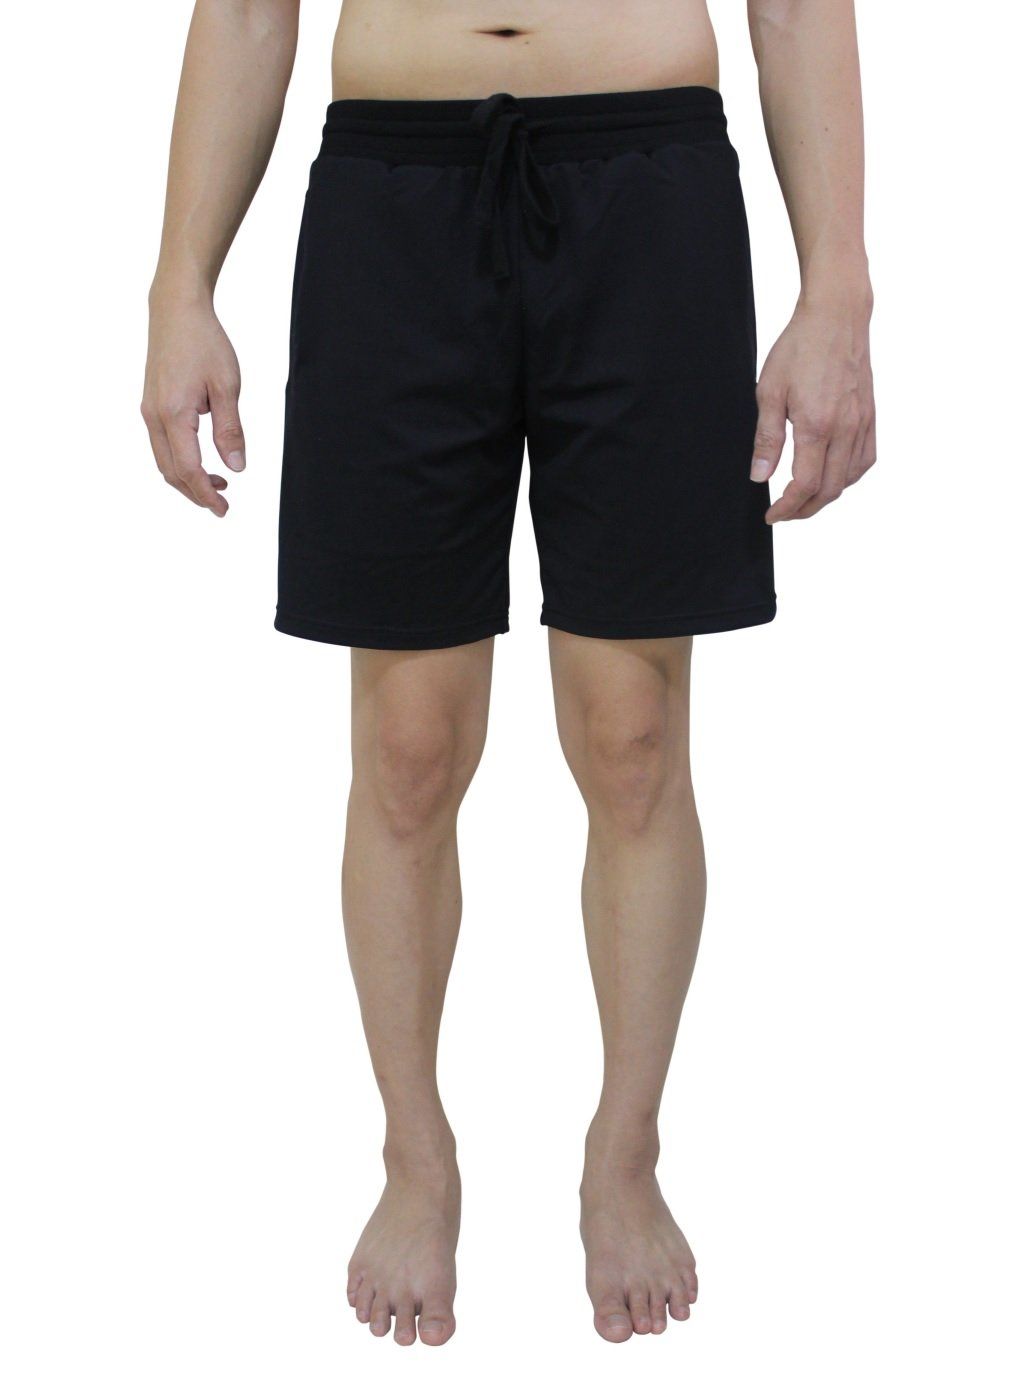 YogaAddict Yoga Shorts For Men, Quick Dry, No Pockets, For Any Yoga (Bikram,  Hot Yoga, Hatha, Ashtanga), Pilates, Gym: Amazon.co.uk: Sports & Outdoors